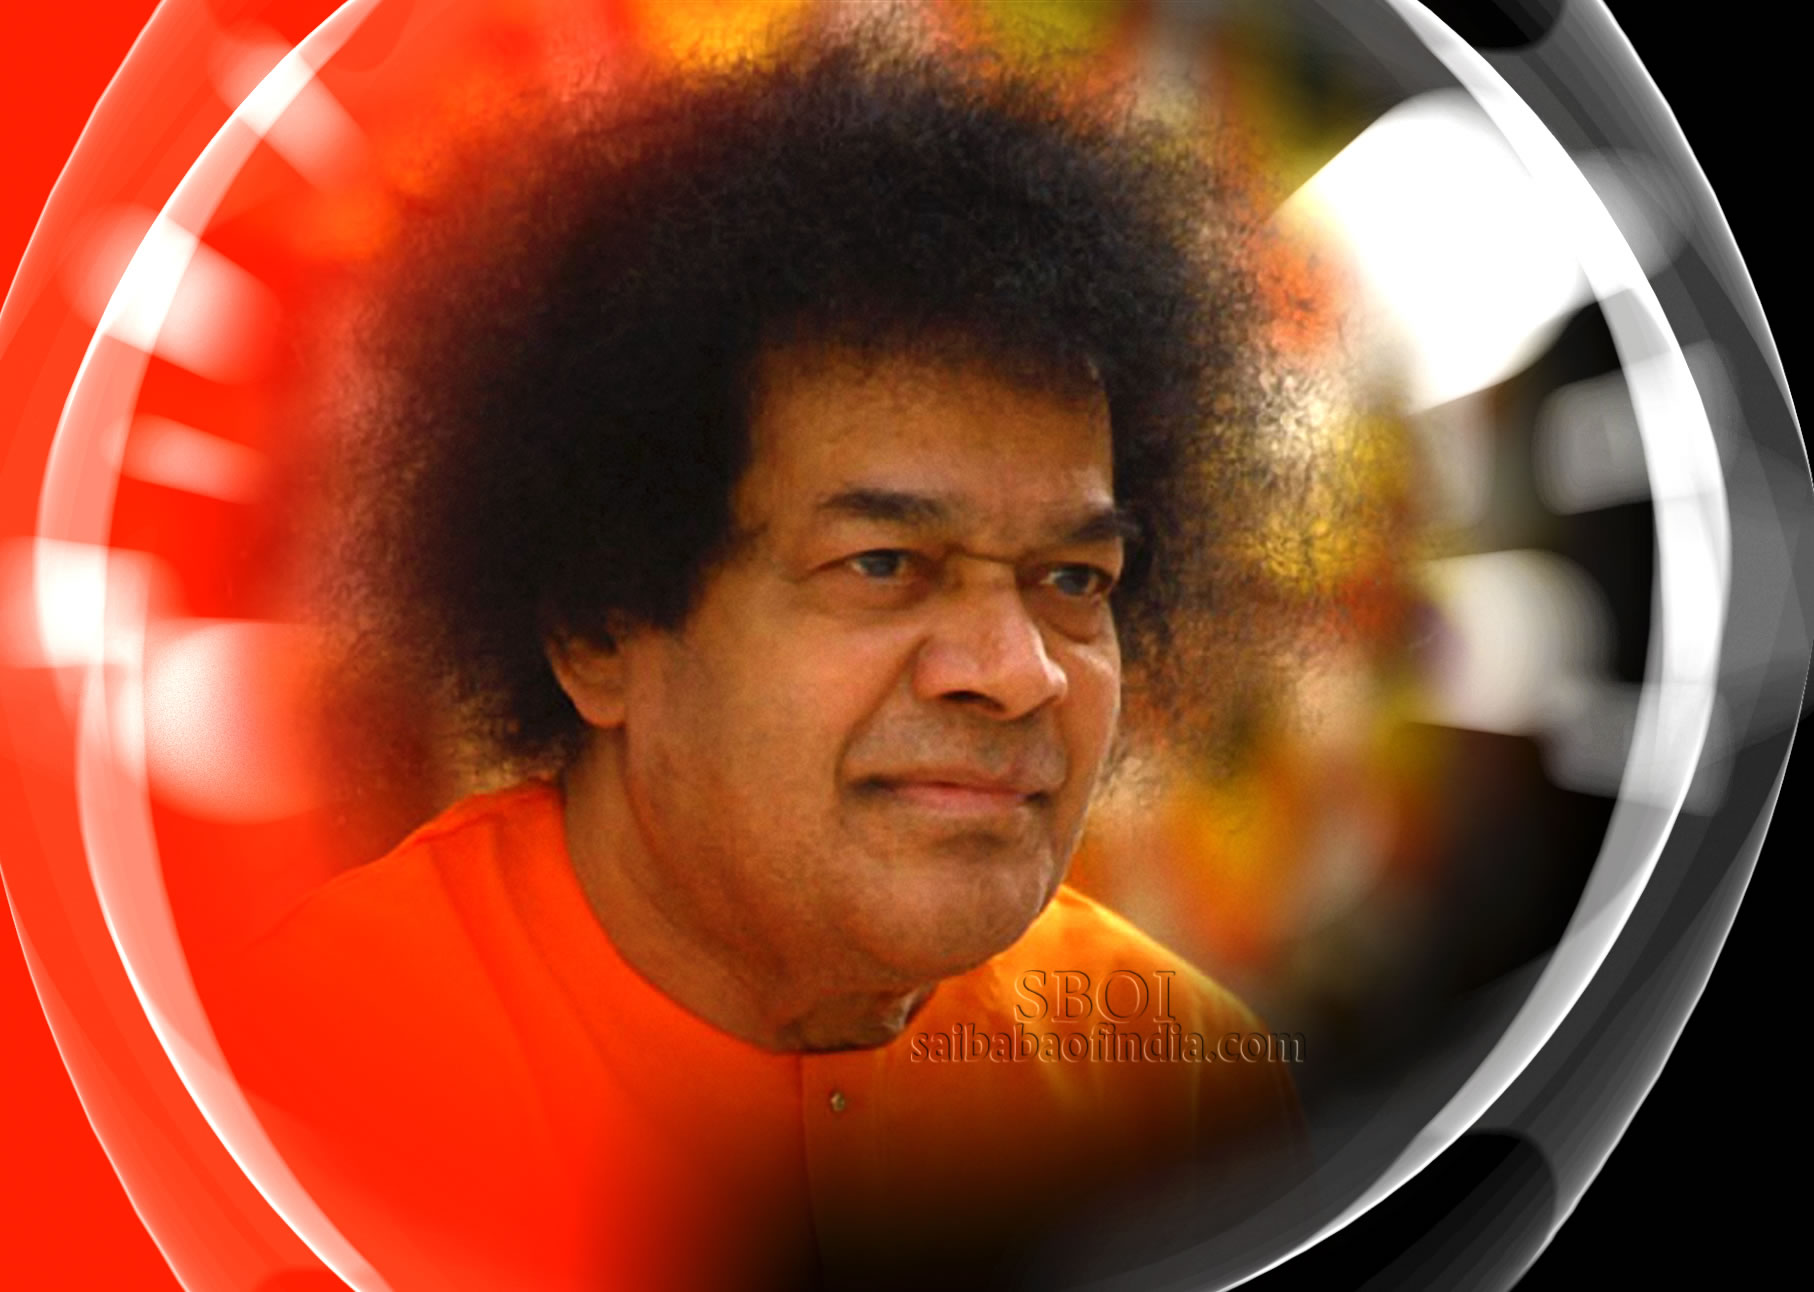 Sri Sathya Sai Baba Wallpapers & s free puter